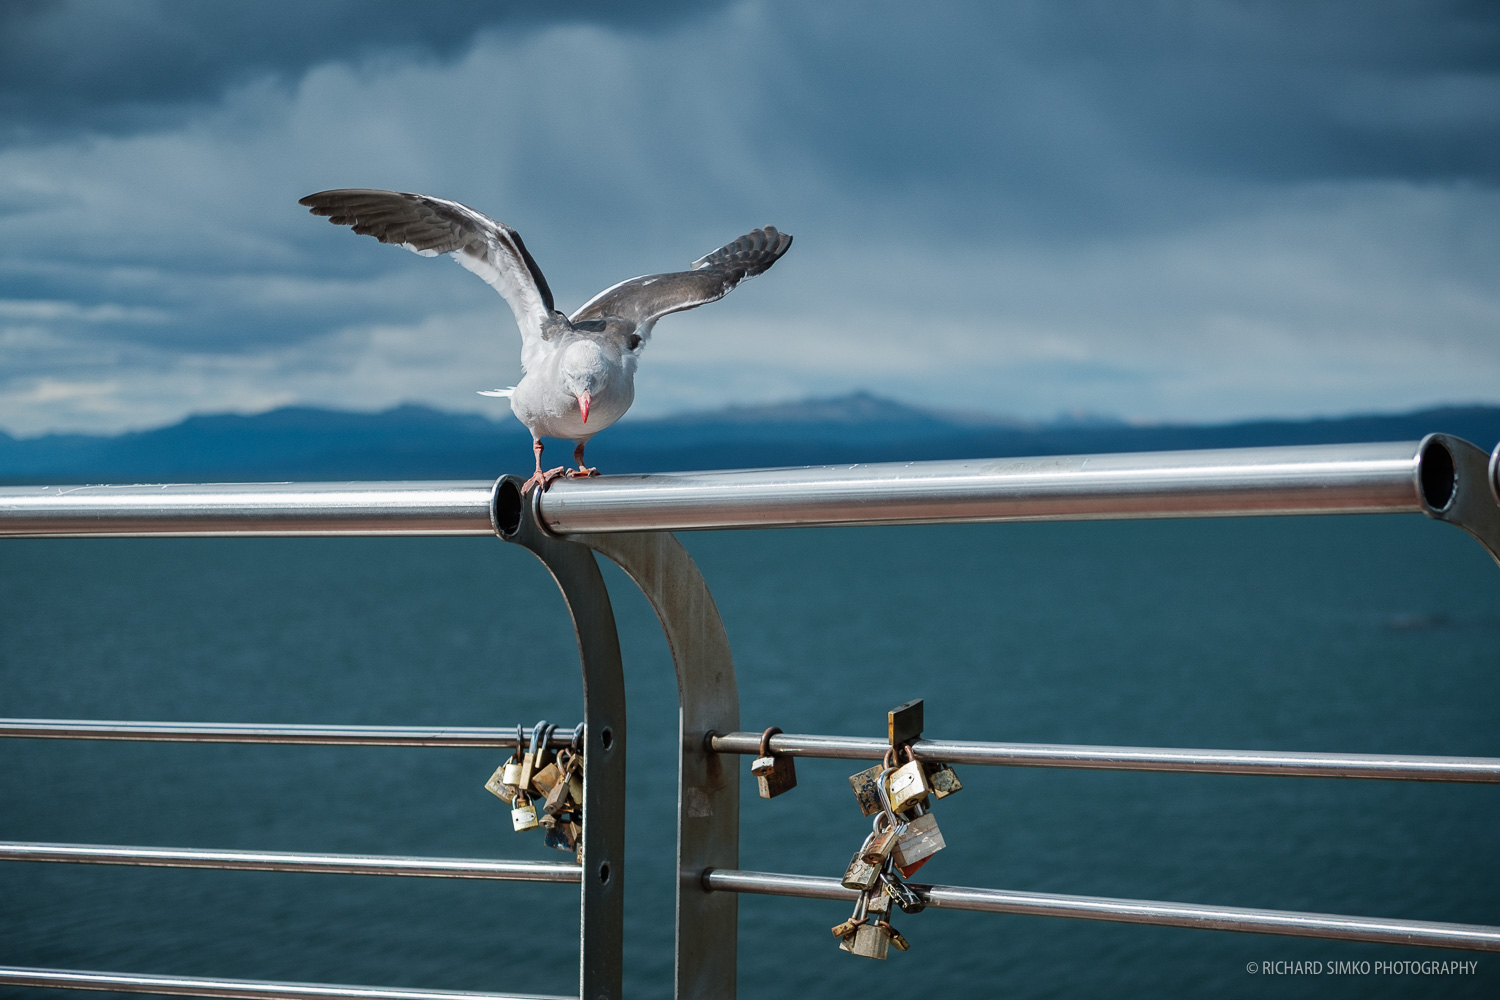 There is lot's of wildlife, especially birds near the bay.